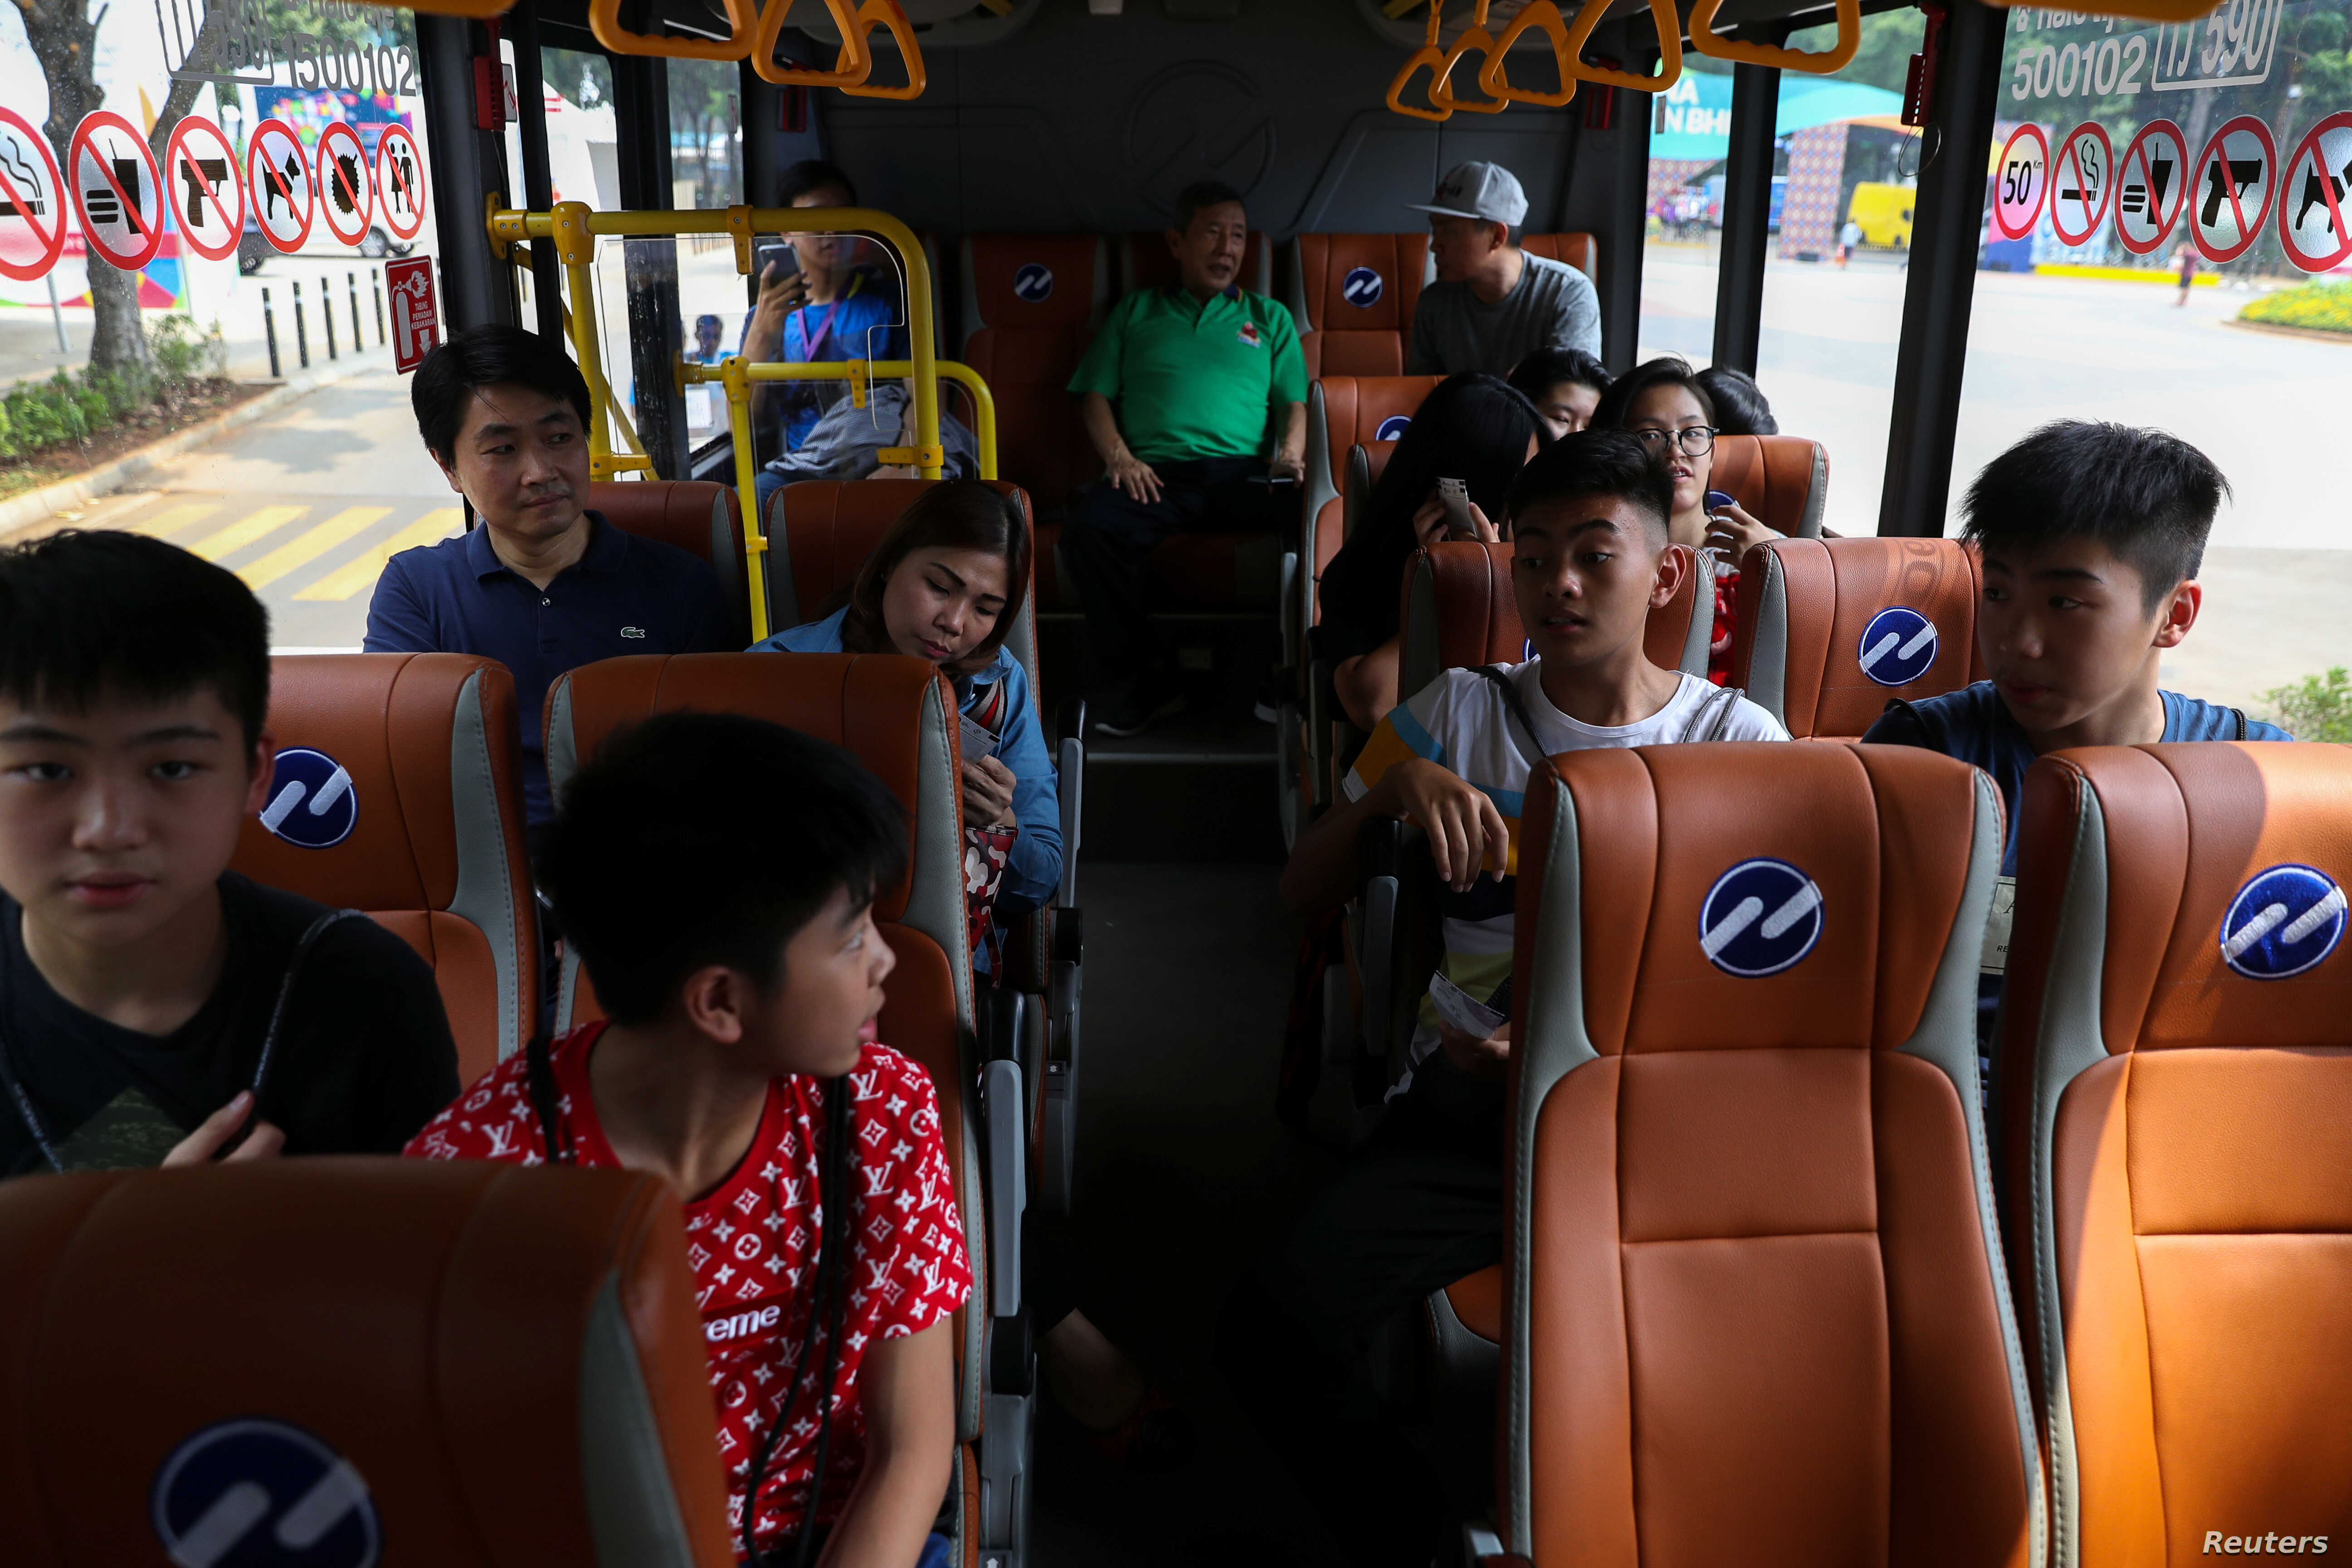 Spectators ride a shuttle bus inside the Gelora Bung Karno sports complex, ahead of the 2018 Asian Games in Jakarta, Indonesia, Aug. 17, 2018.